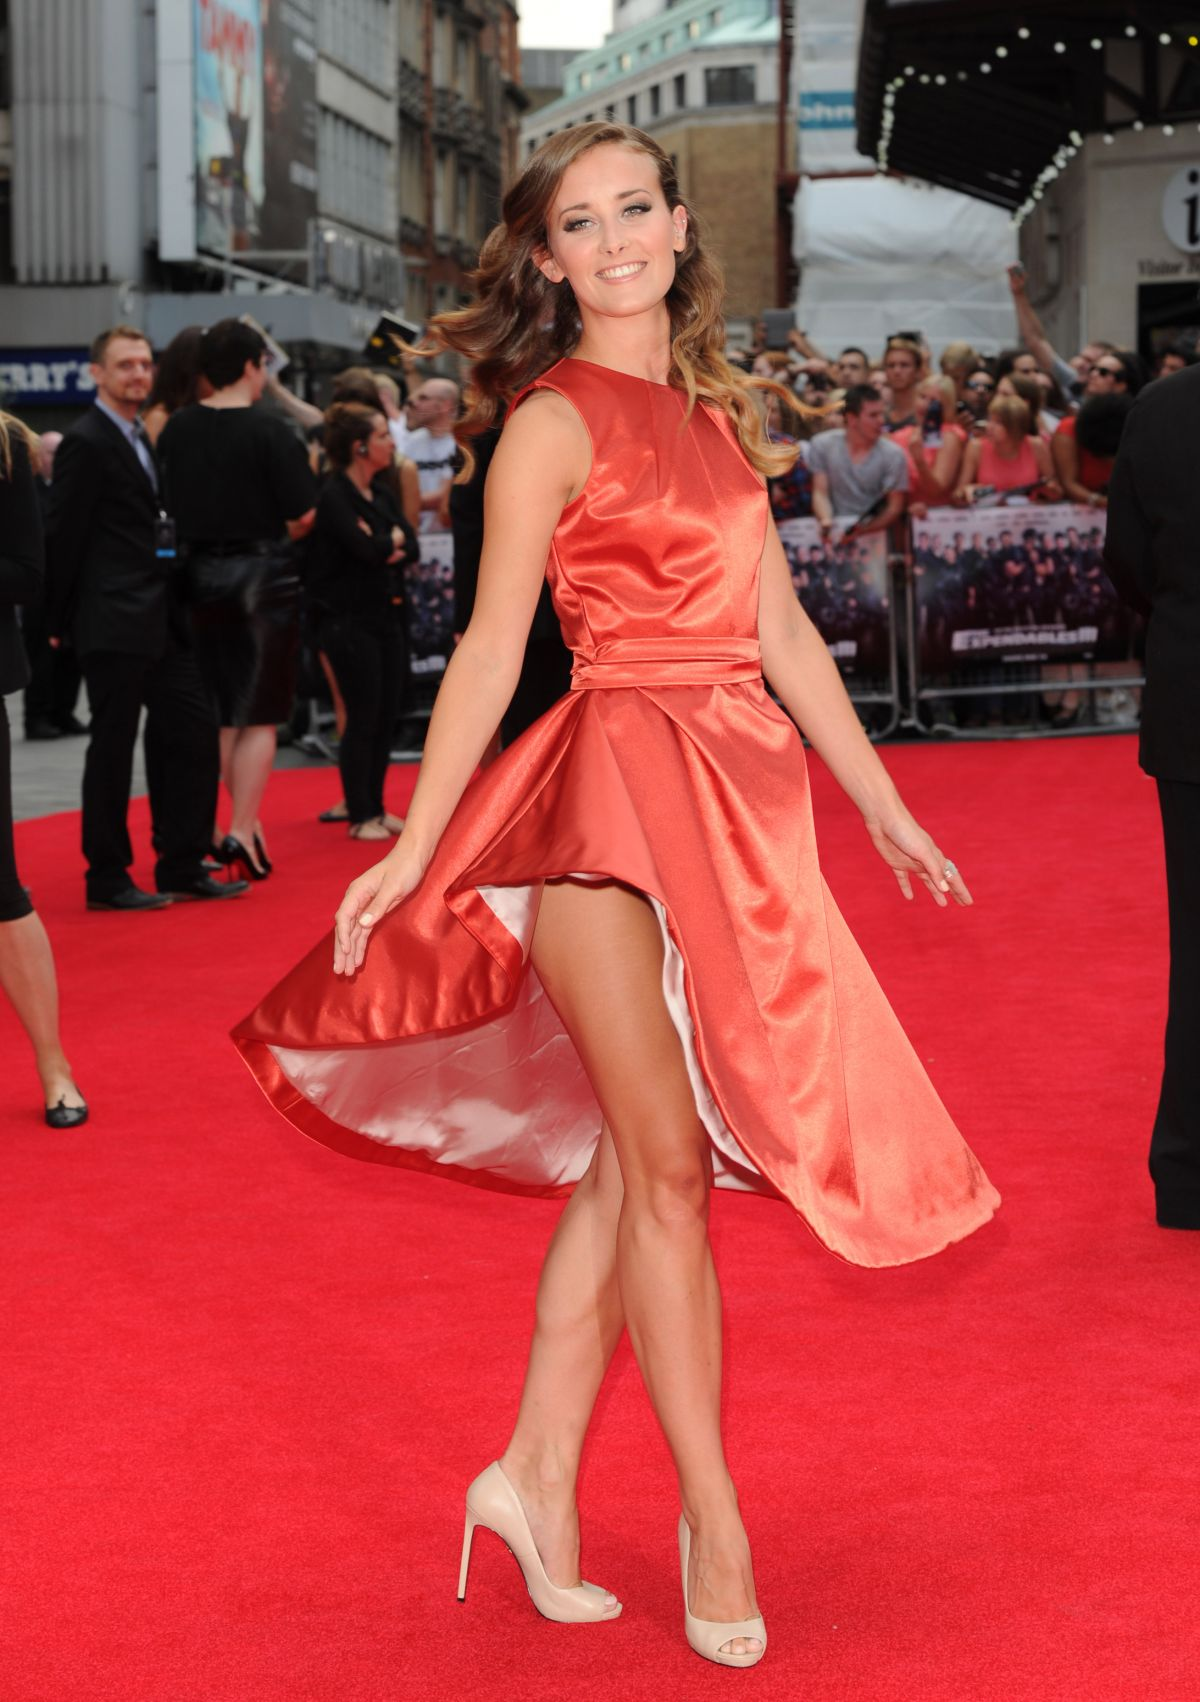 APRIL PEARSON at The Expendables 3 Premiere in London